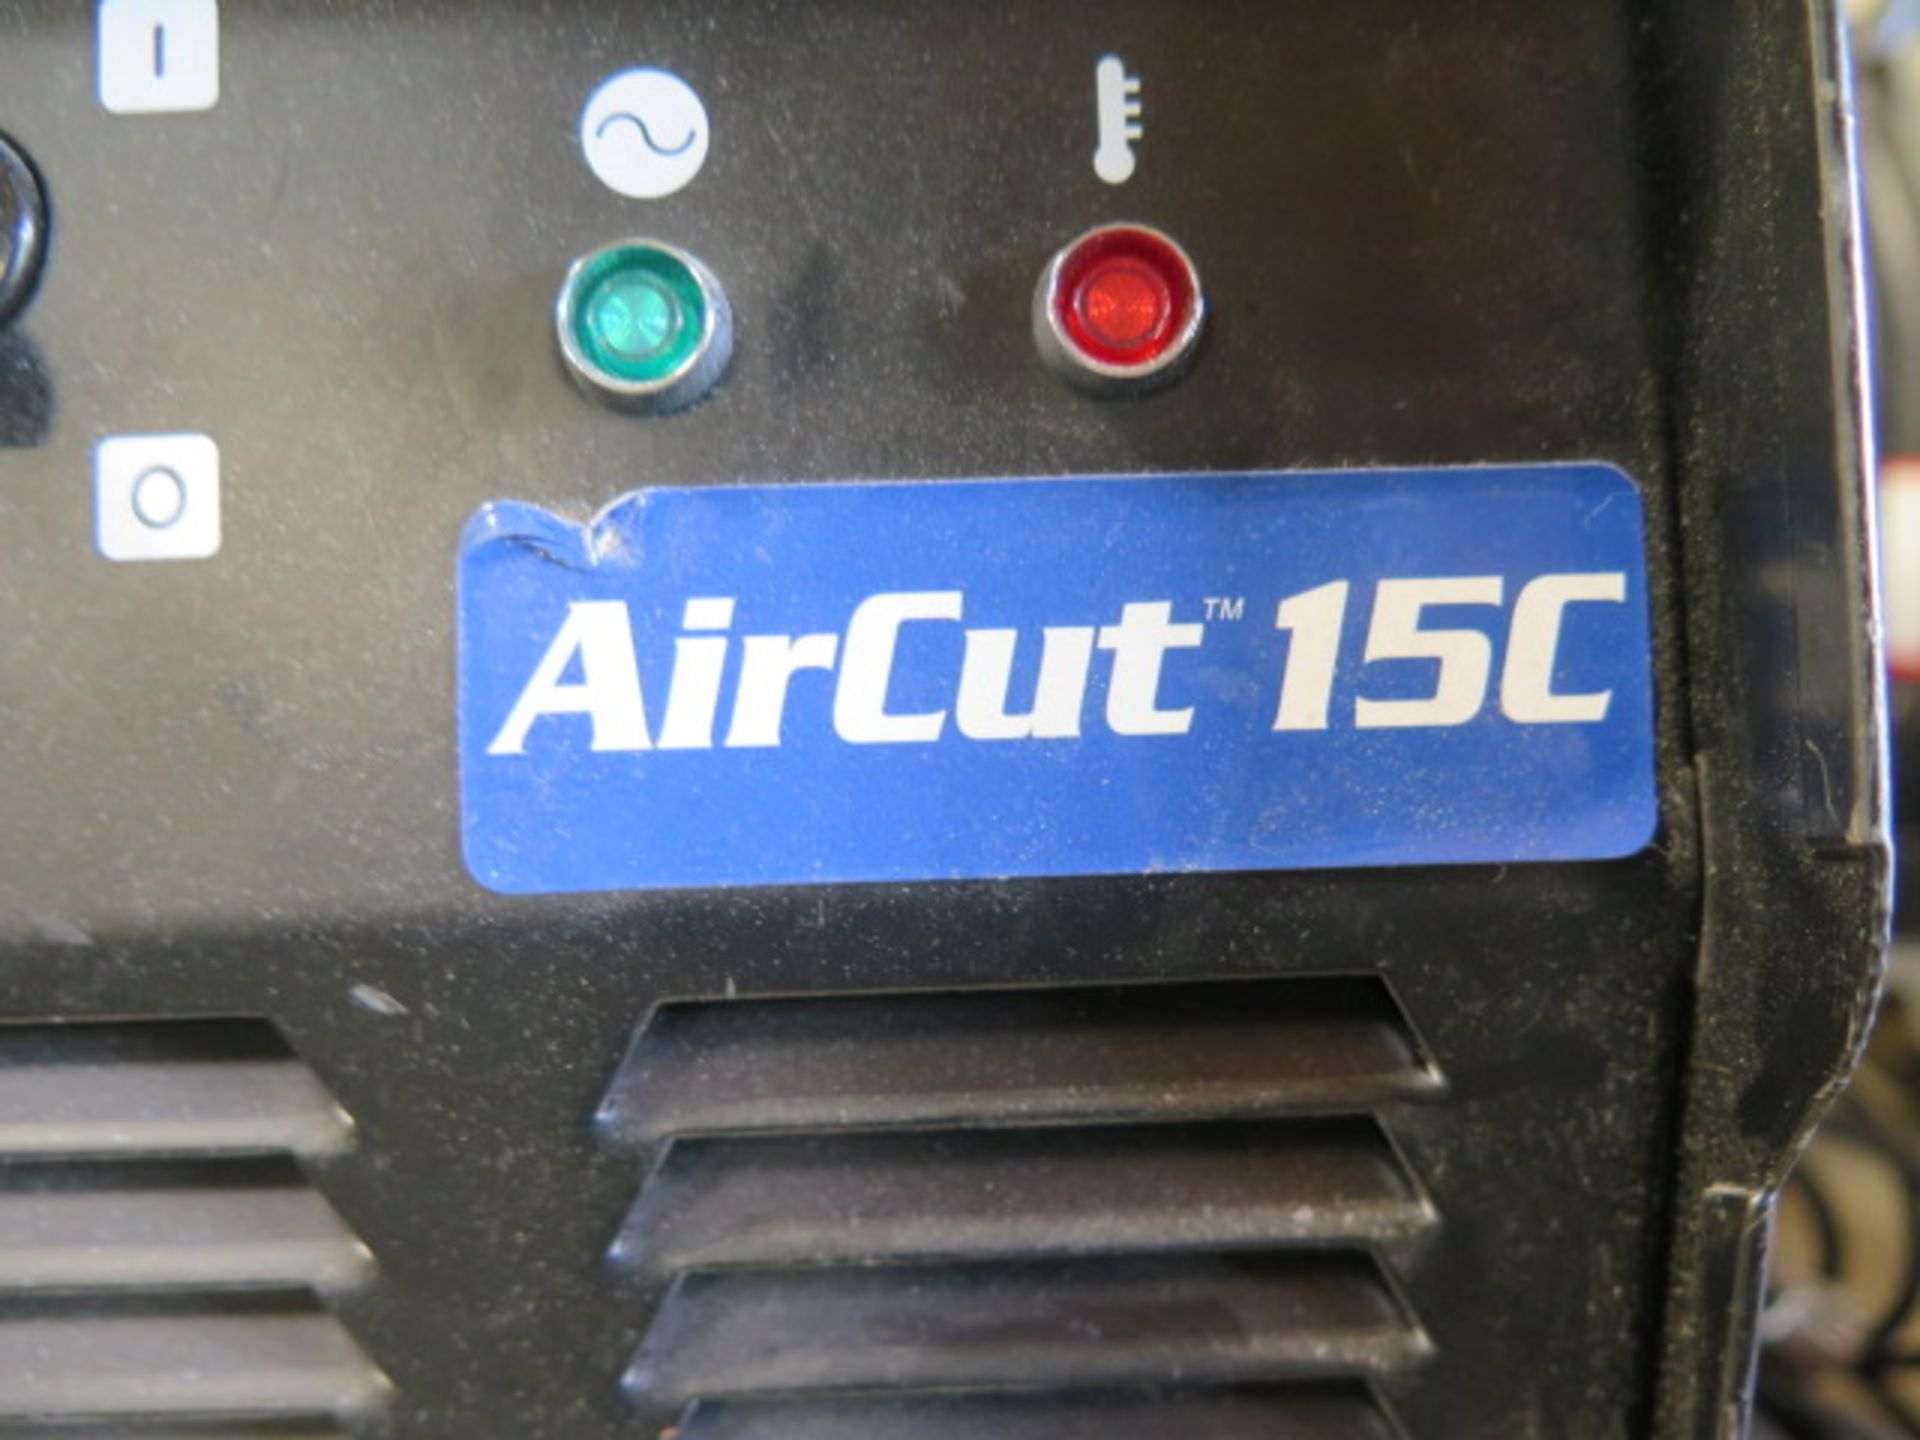 Thermal Dynamics AirCut 15 Plasma Cutting Power Source (SOLD AS-IS - NO WARRANTY) - Image 5 of 5